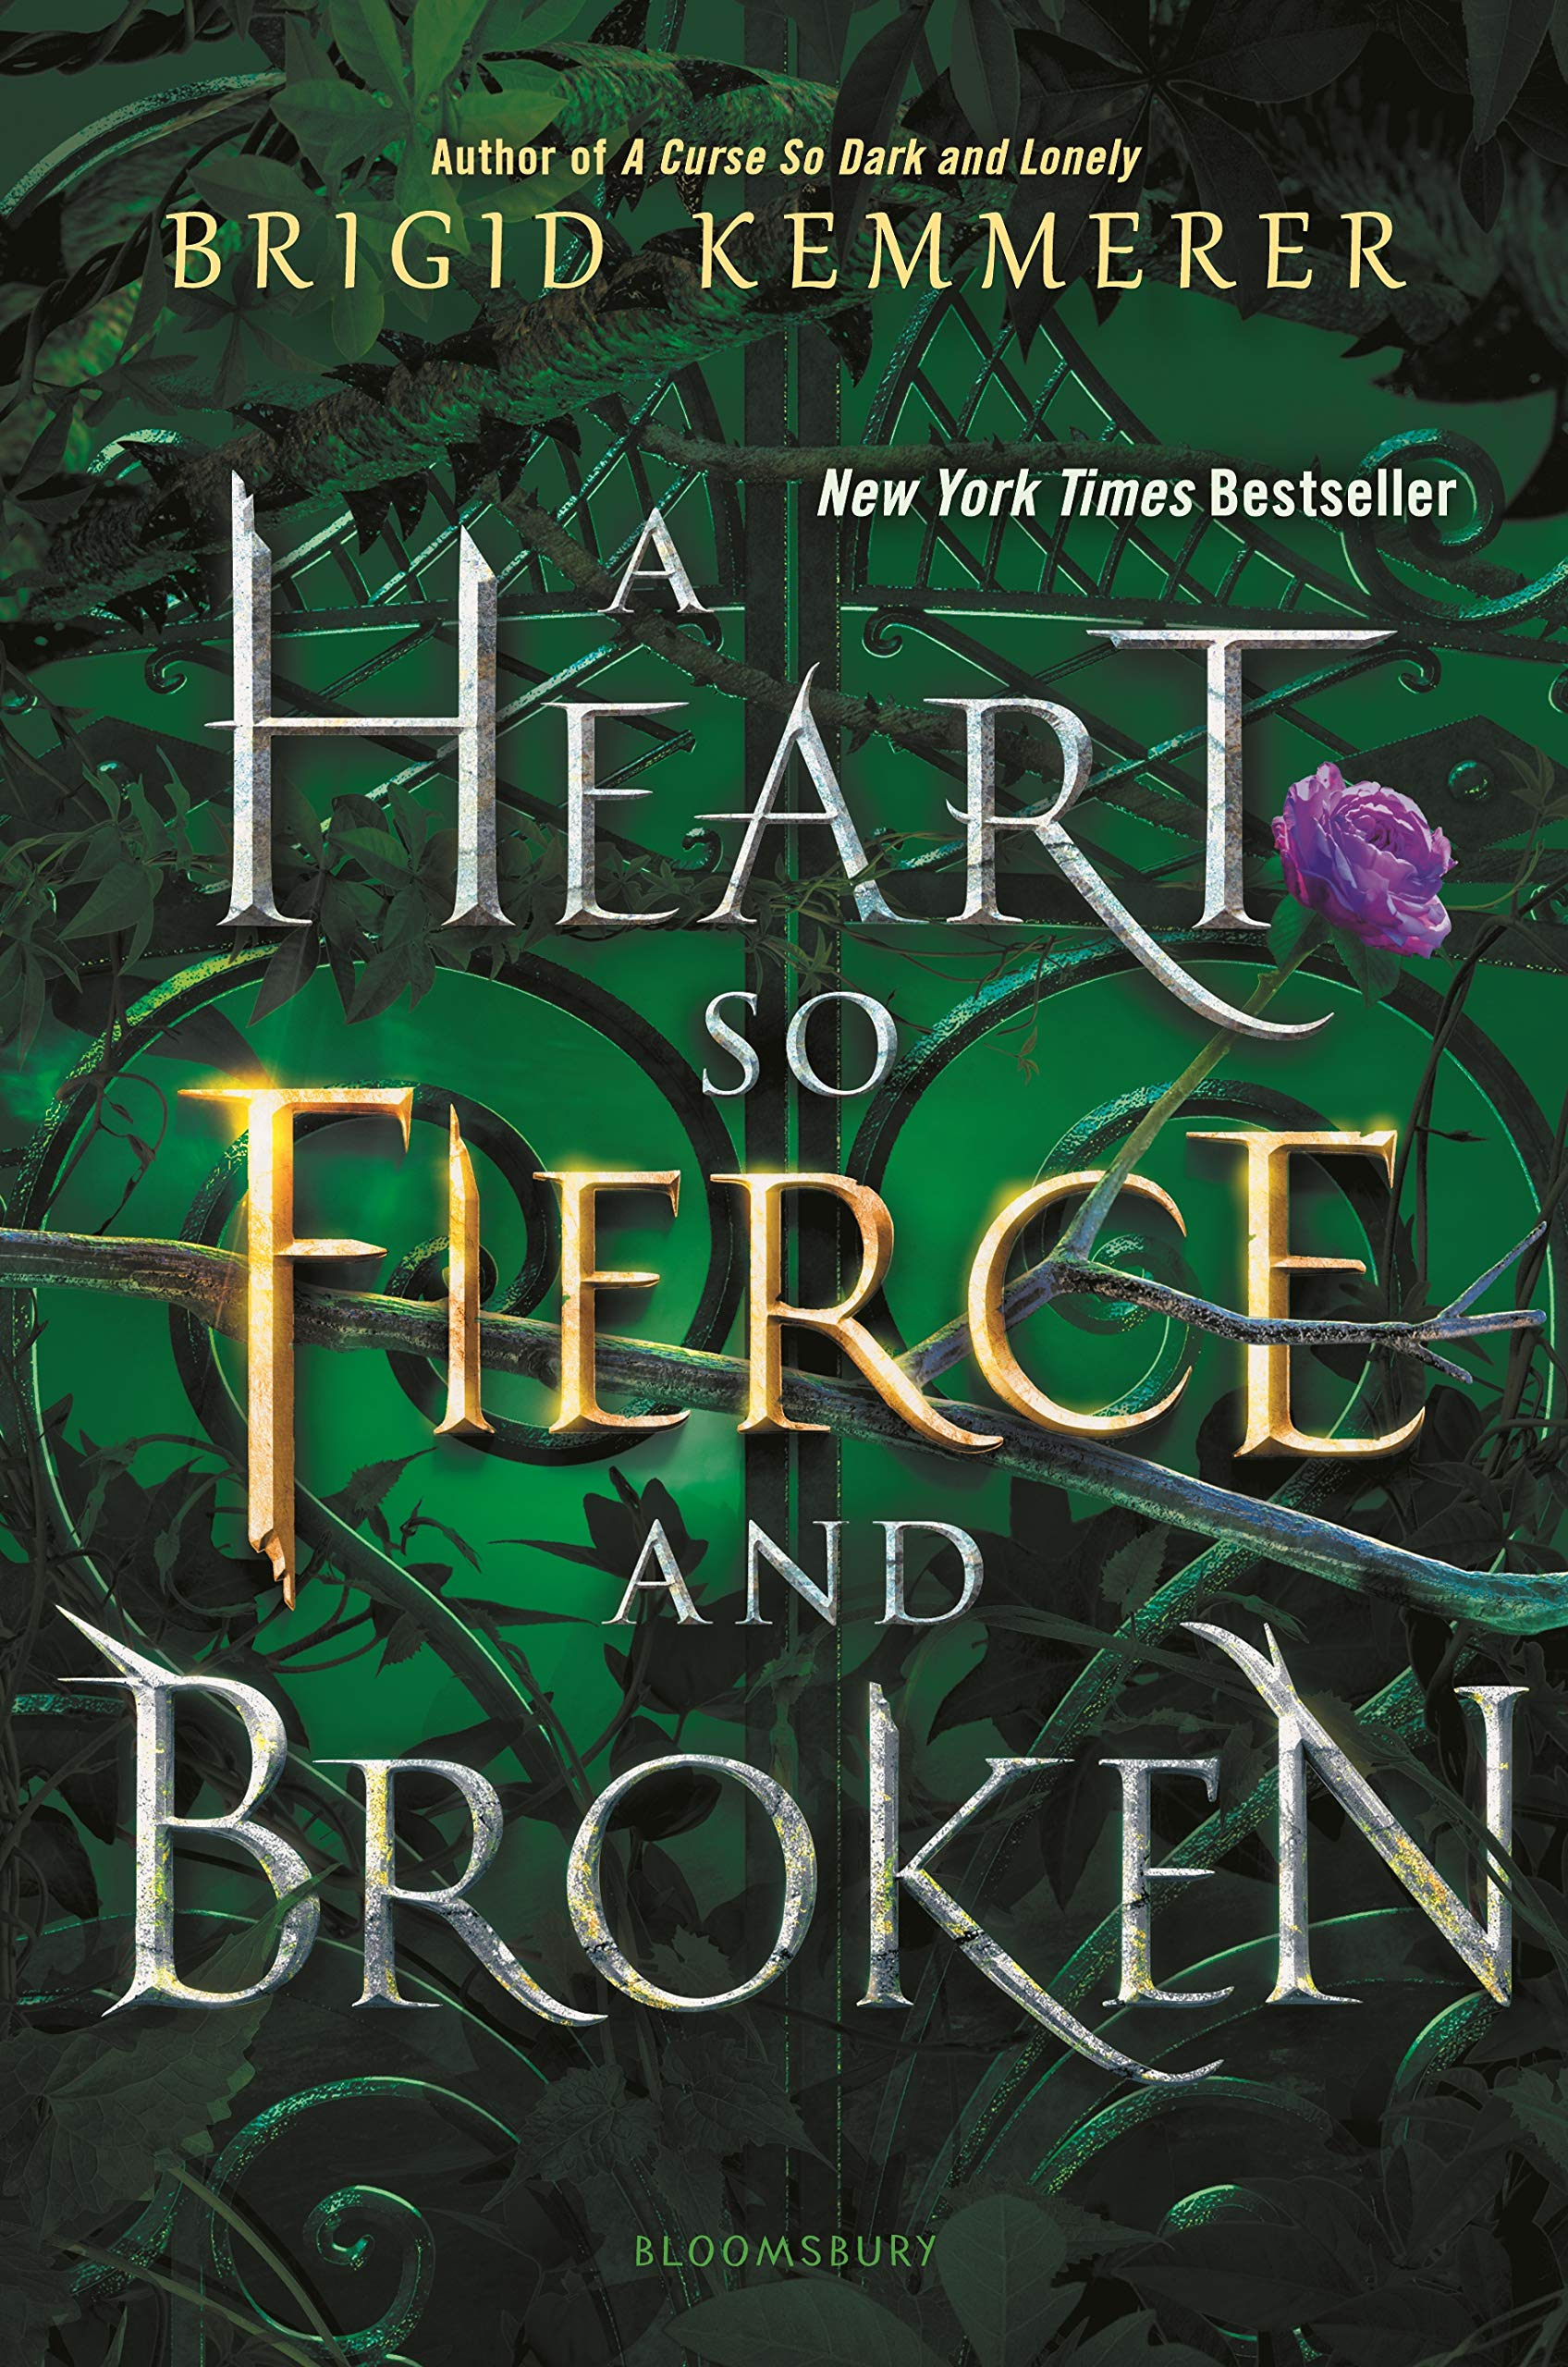 A Heart So Fierce and Broken: Amazon.ca: Kemmerer, Brigid: Books